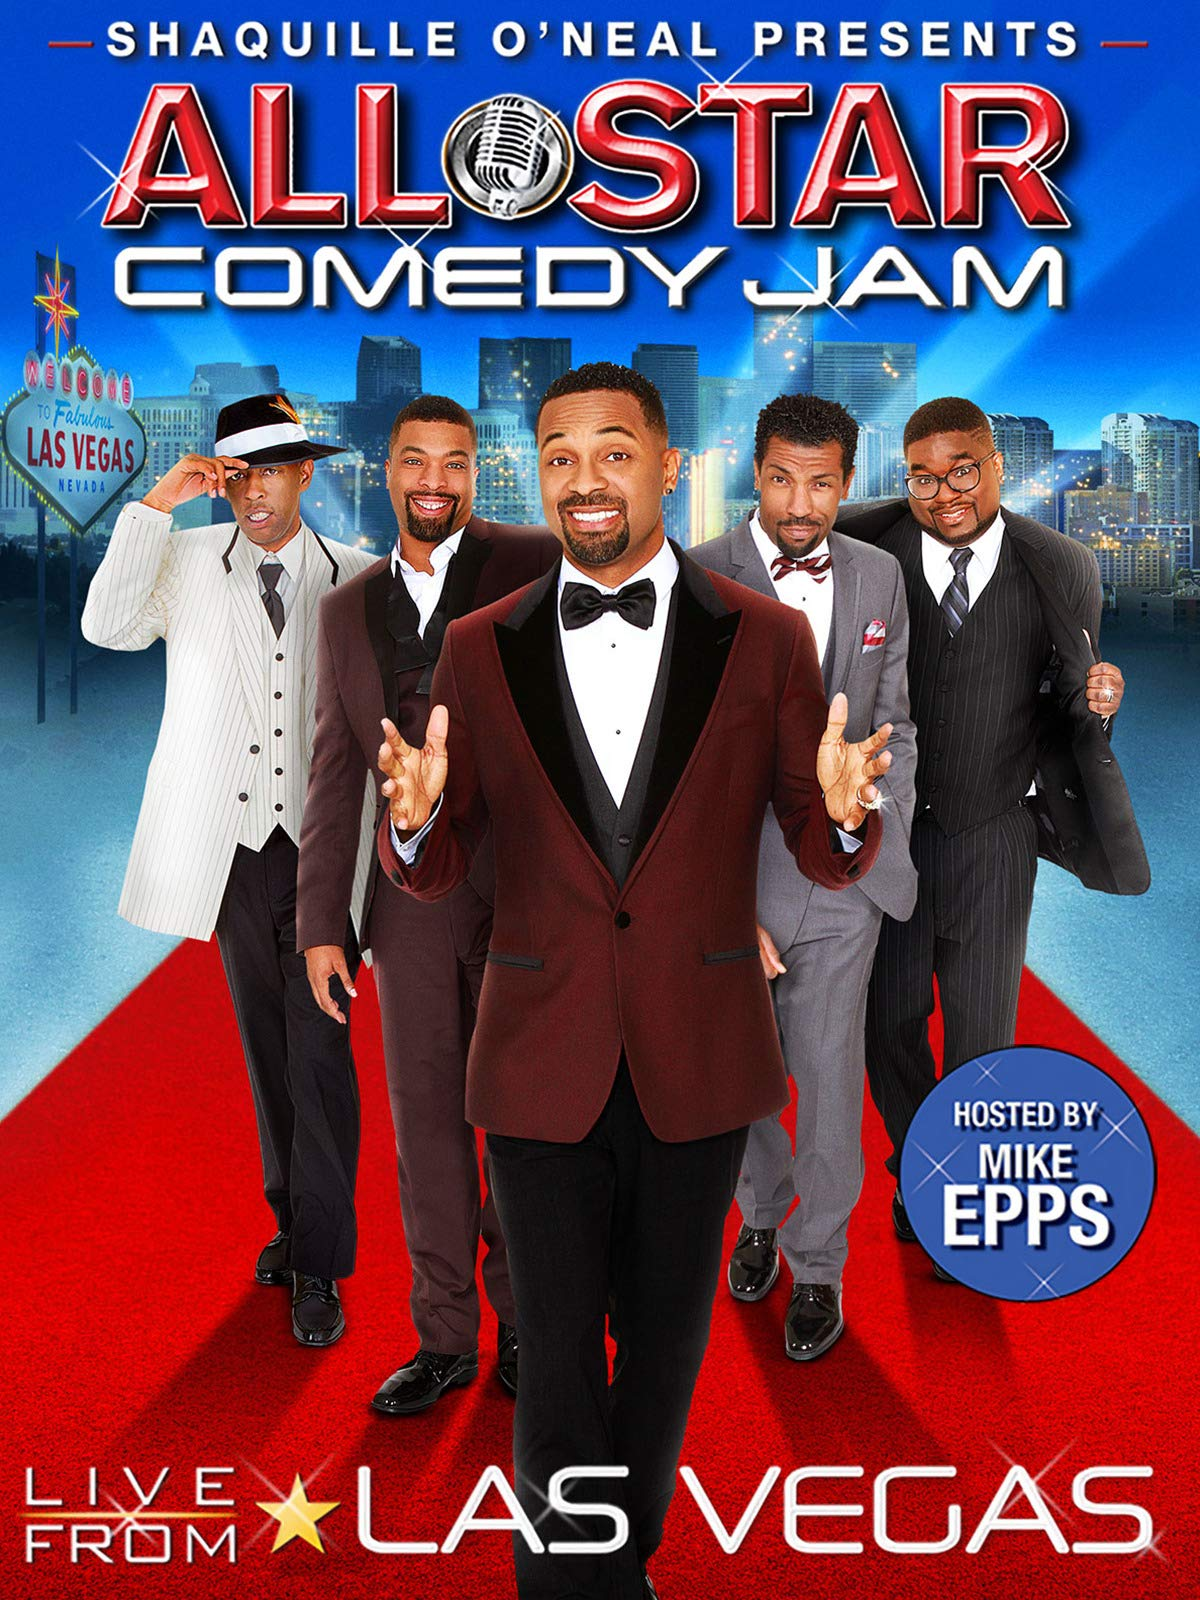 Shaquille O'Neal Presents: All Star Comedy Jam - Live From Las Vegas on Amazon Prime Video UK